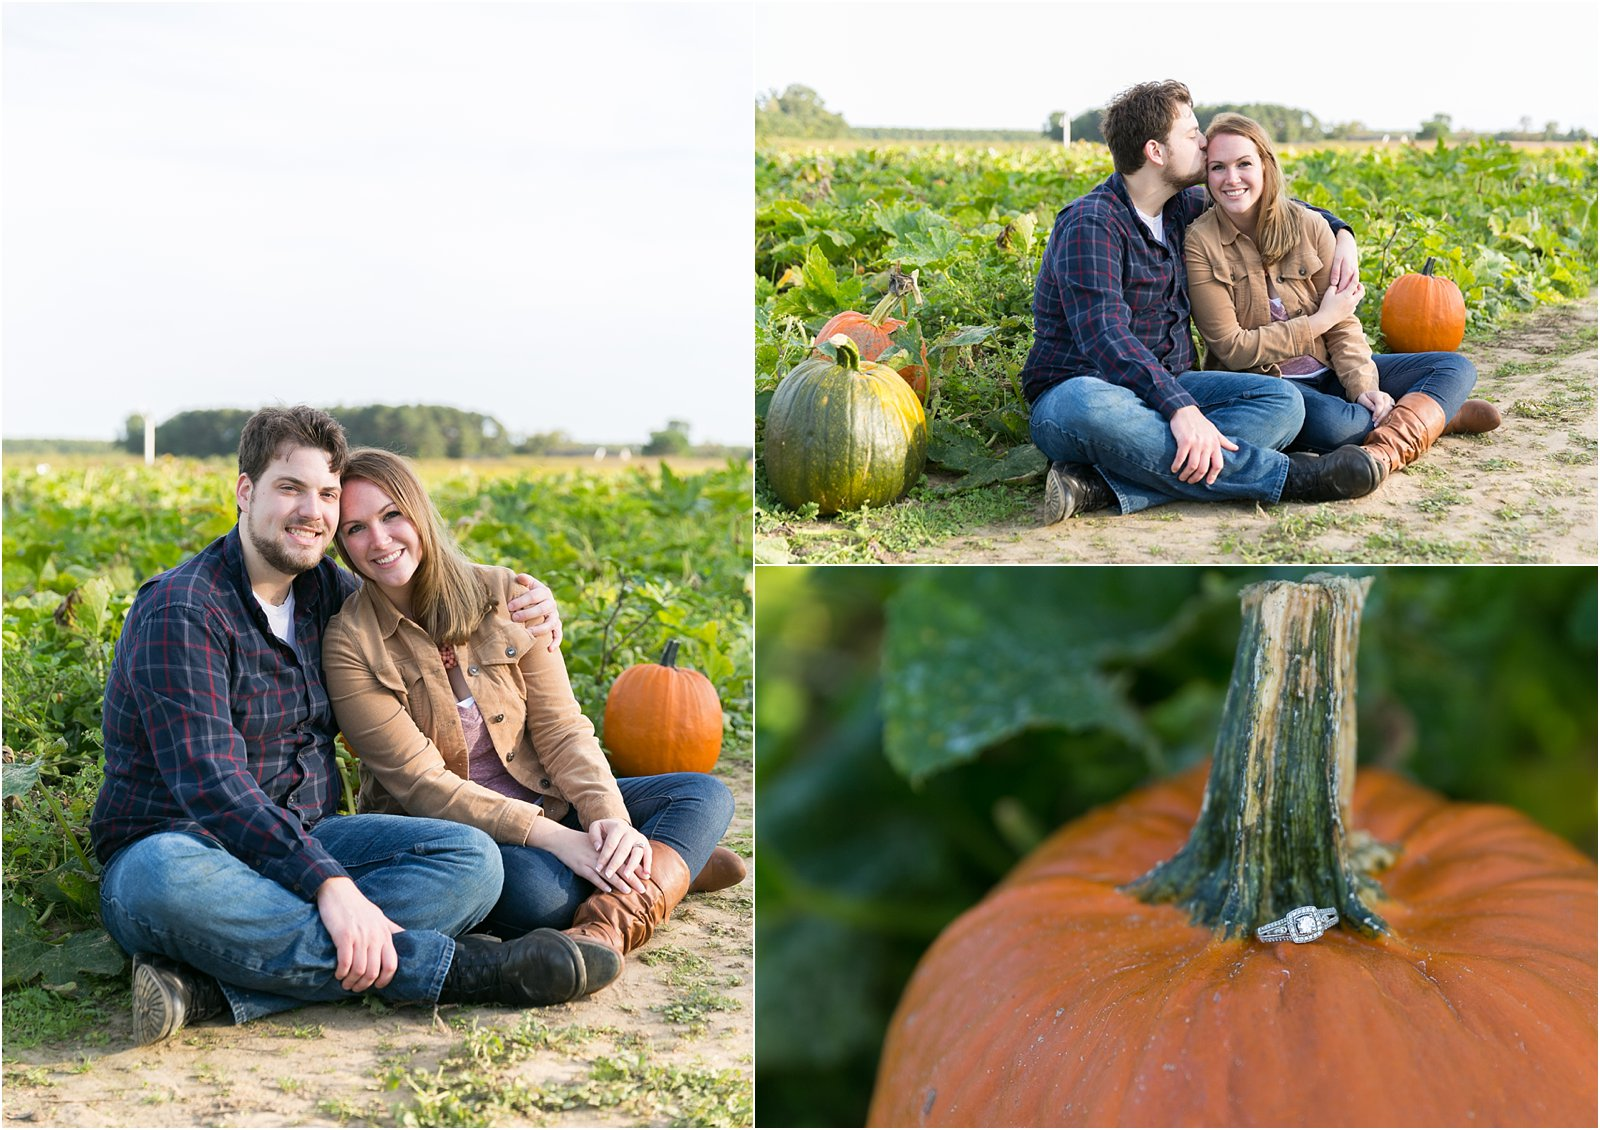 jessica_ryan_photography_pumpkin_patch_engagement_portraits_fall_october_engagements_virginia_beach_chesapeake_0292